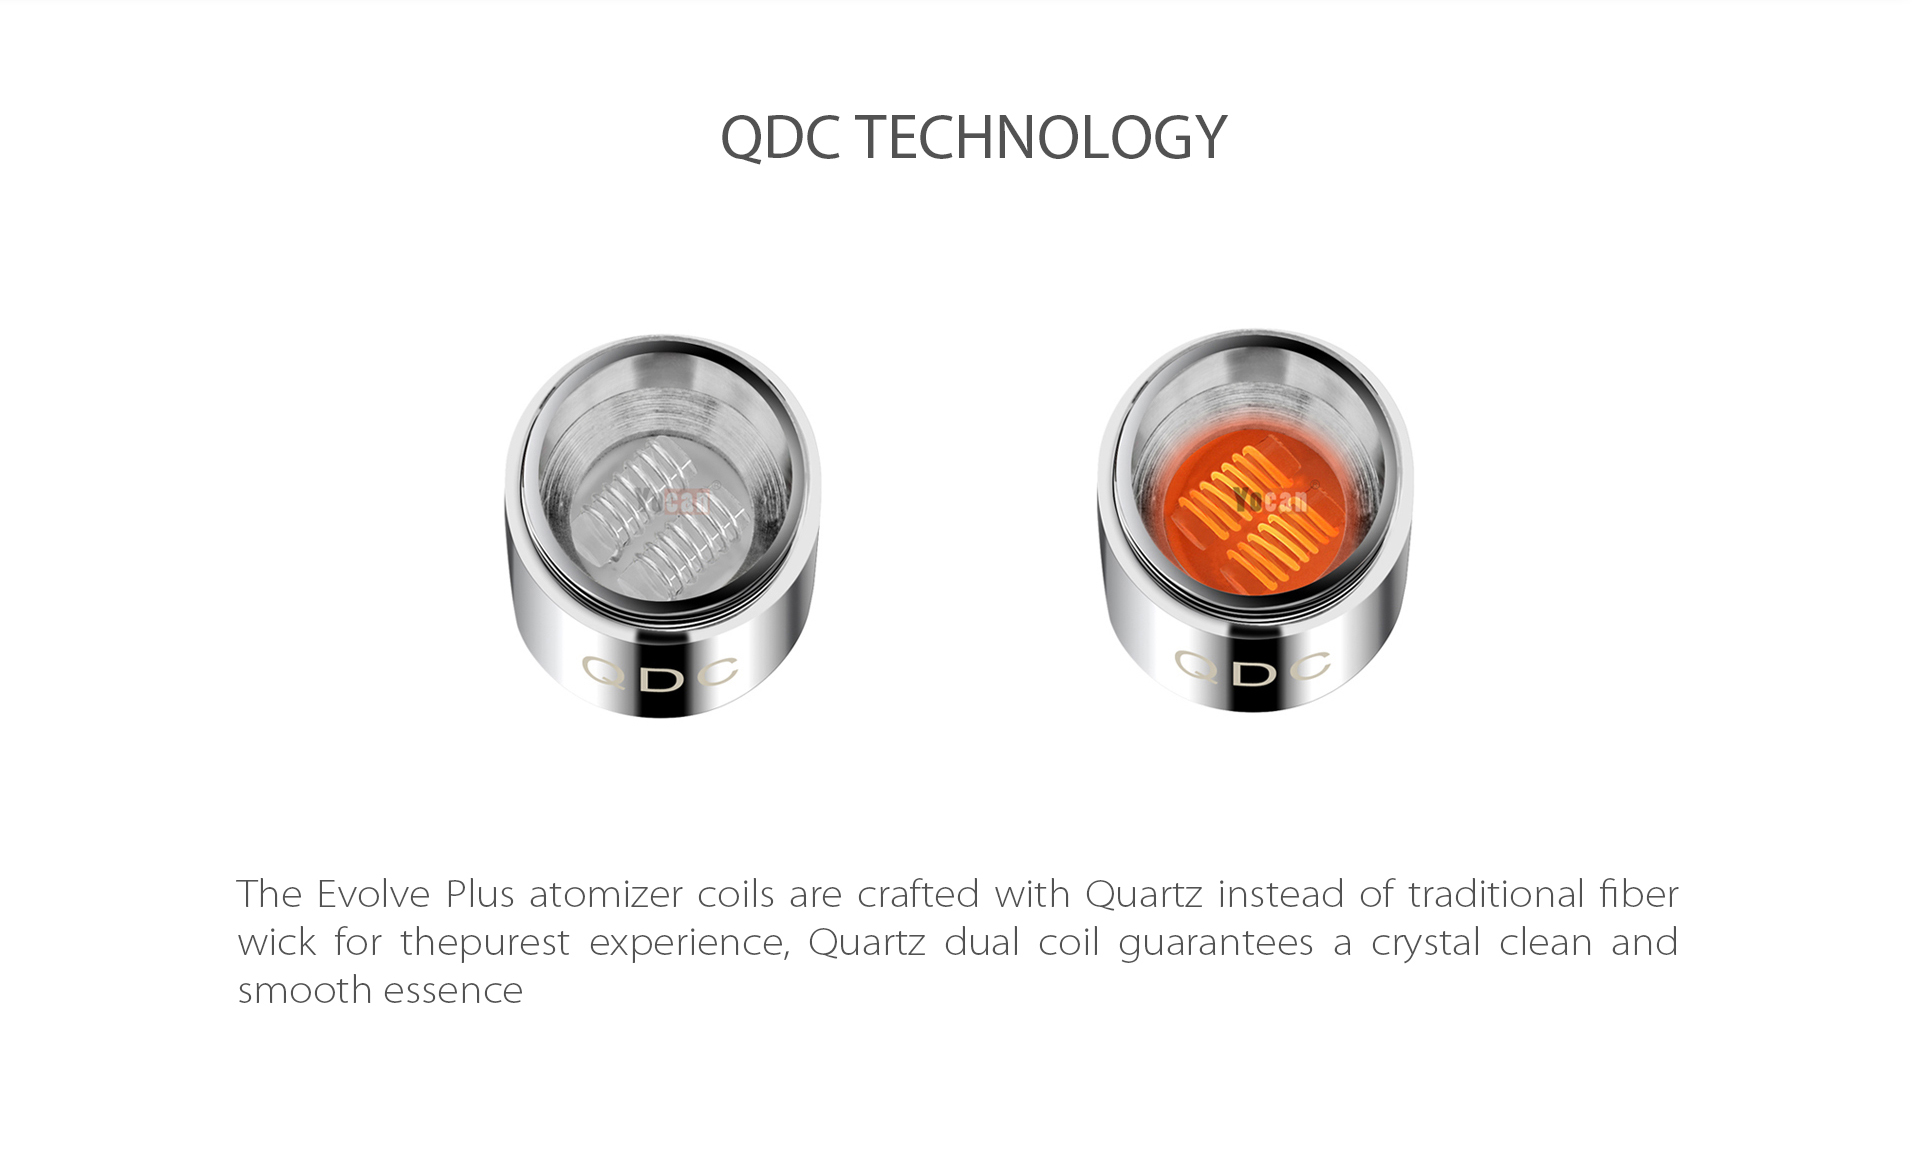 Yocan Evolve-Plus vaporizer pen 2020 version features Quartz Dual Coil (QDC) Technology.